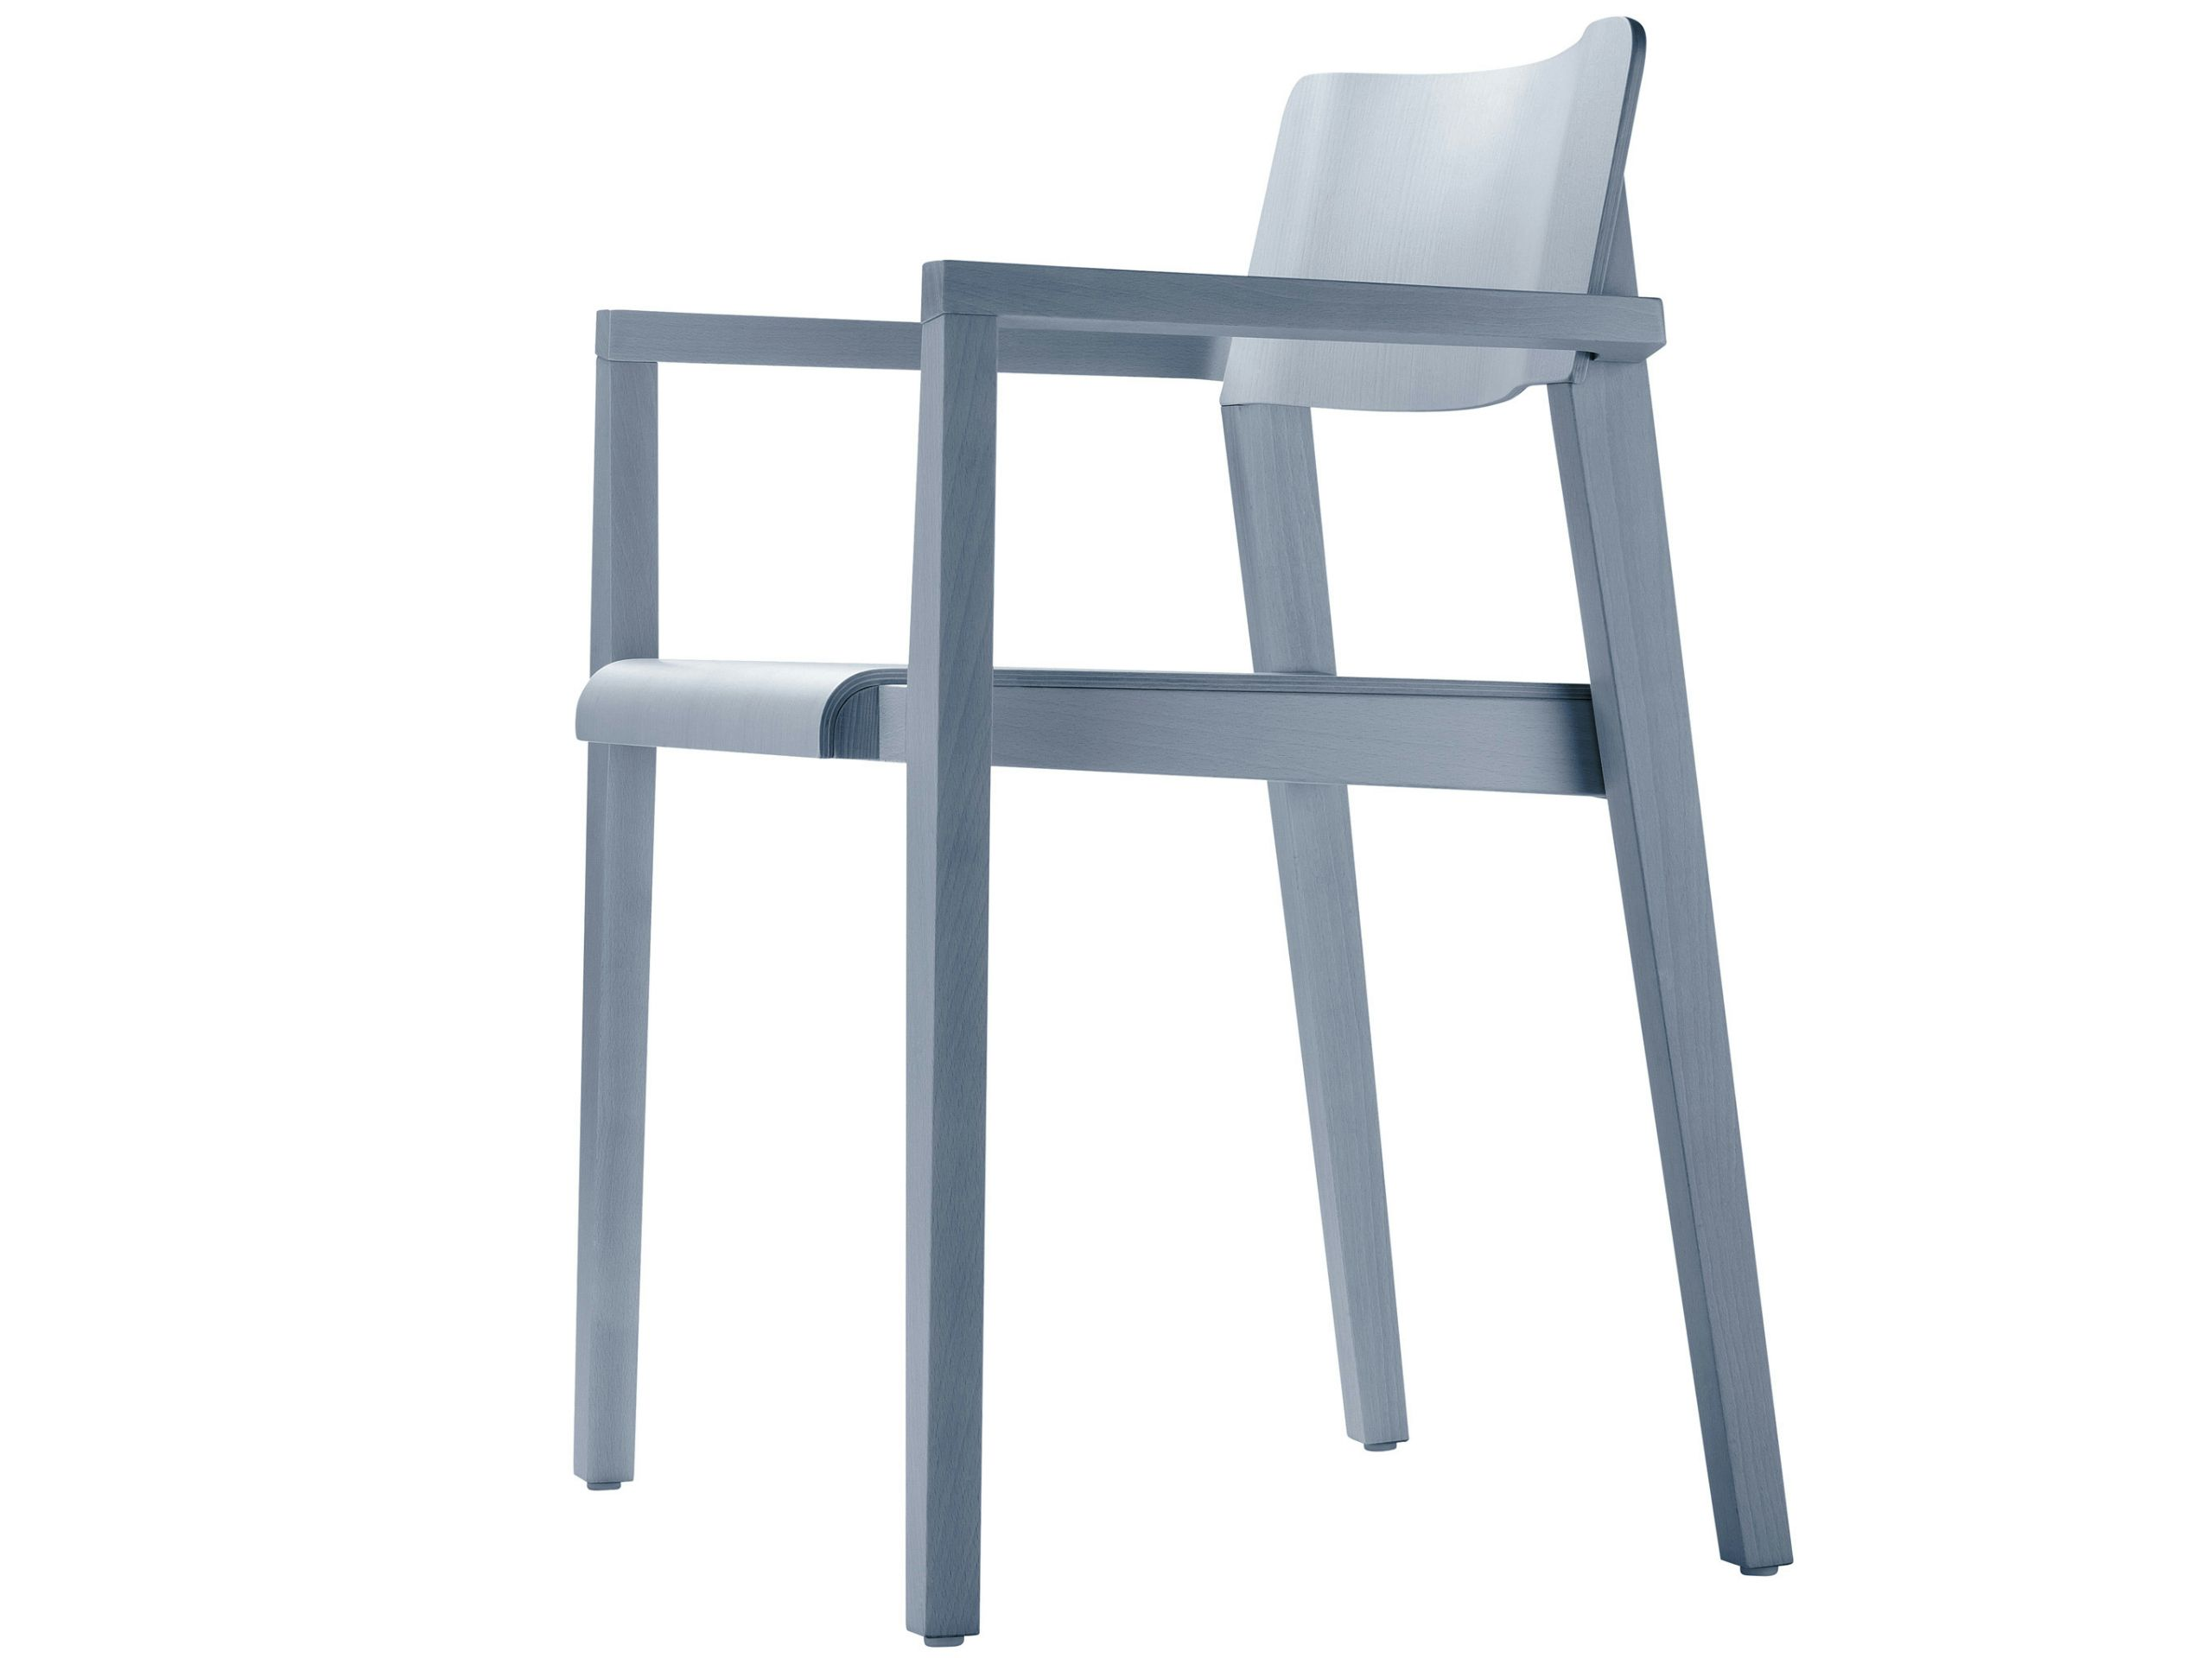 shaped shapes chair is simple designed seats featuring straight language and a lines keichel design ergonomically pin distinctive the l timeless by series ufer characterized